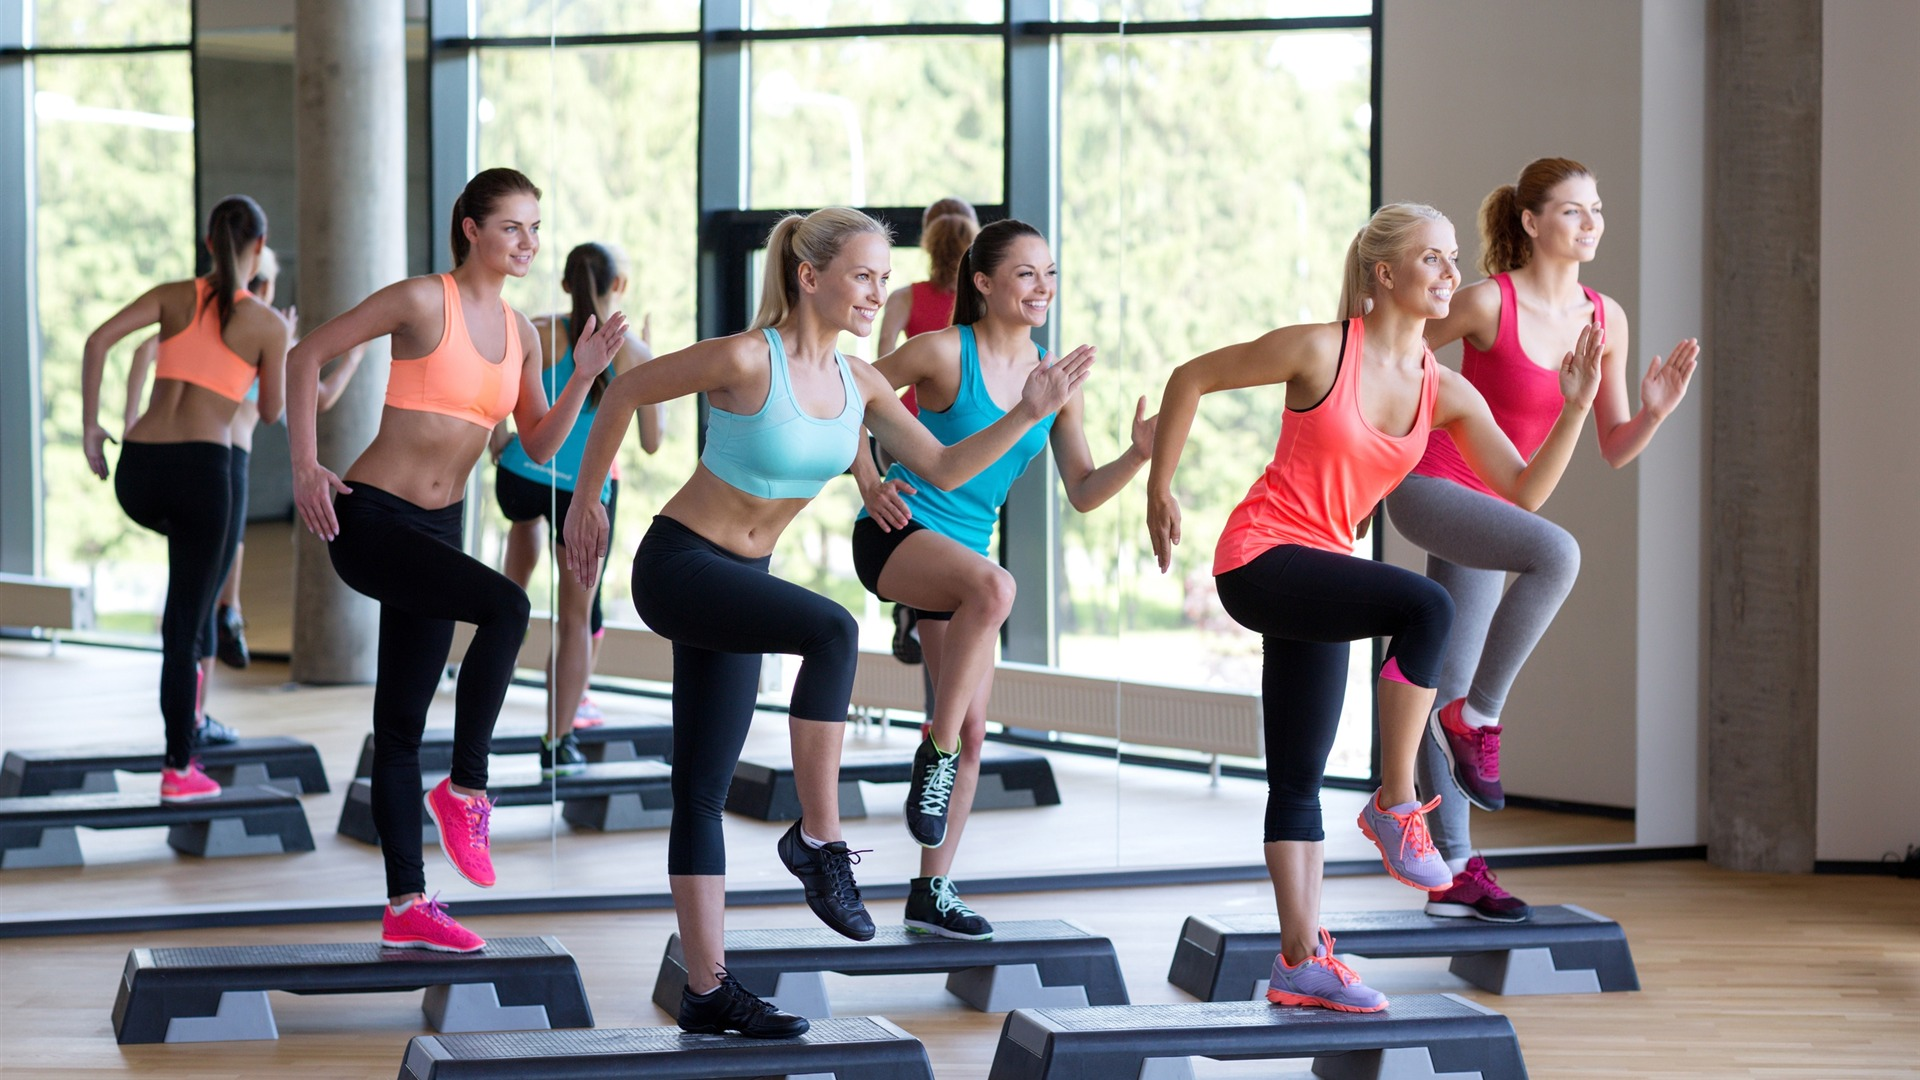 Women aerobics located step fitness photo HD 1920x1080